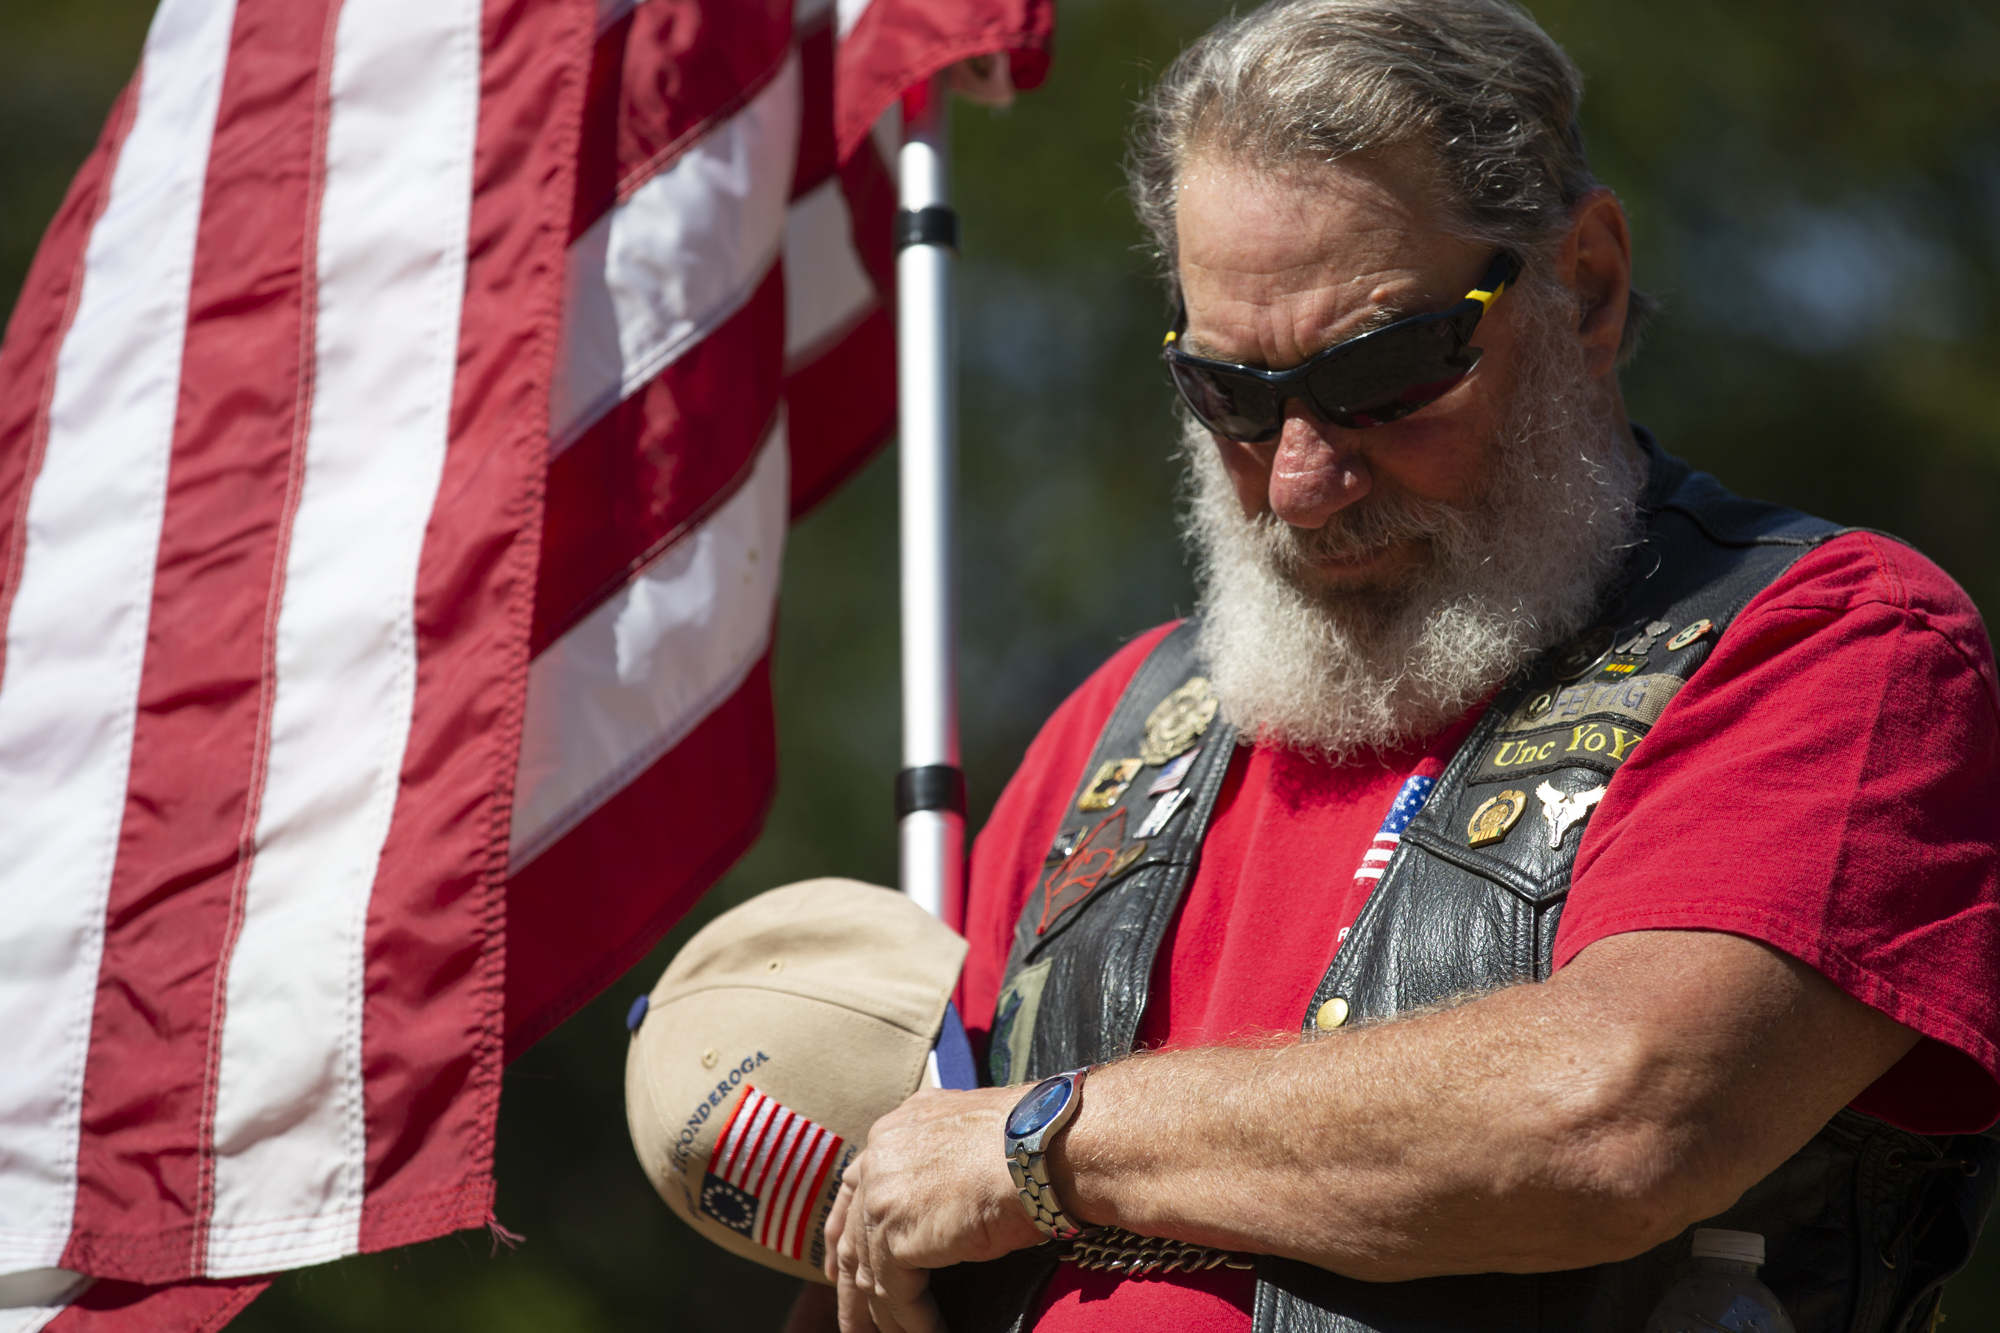 Patriot Guard Rider, Joe Fettig, also known as Unc YoYo, holds an American flag during a ceremony honoring the memory of U.S. Army Sgt. Earl D. Warner and U.S. Army Sgt. Bryce D. Howard at Fort Vancouver Barracks War Memorial in Vancouver on Saturday, August 28, 2021.